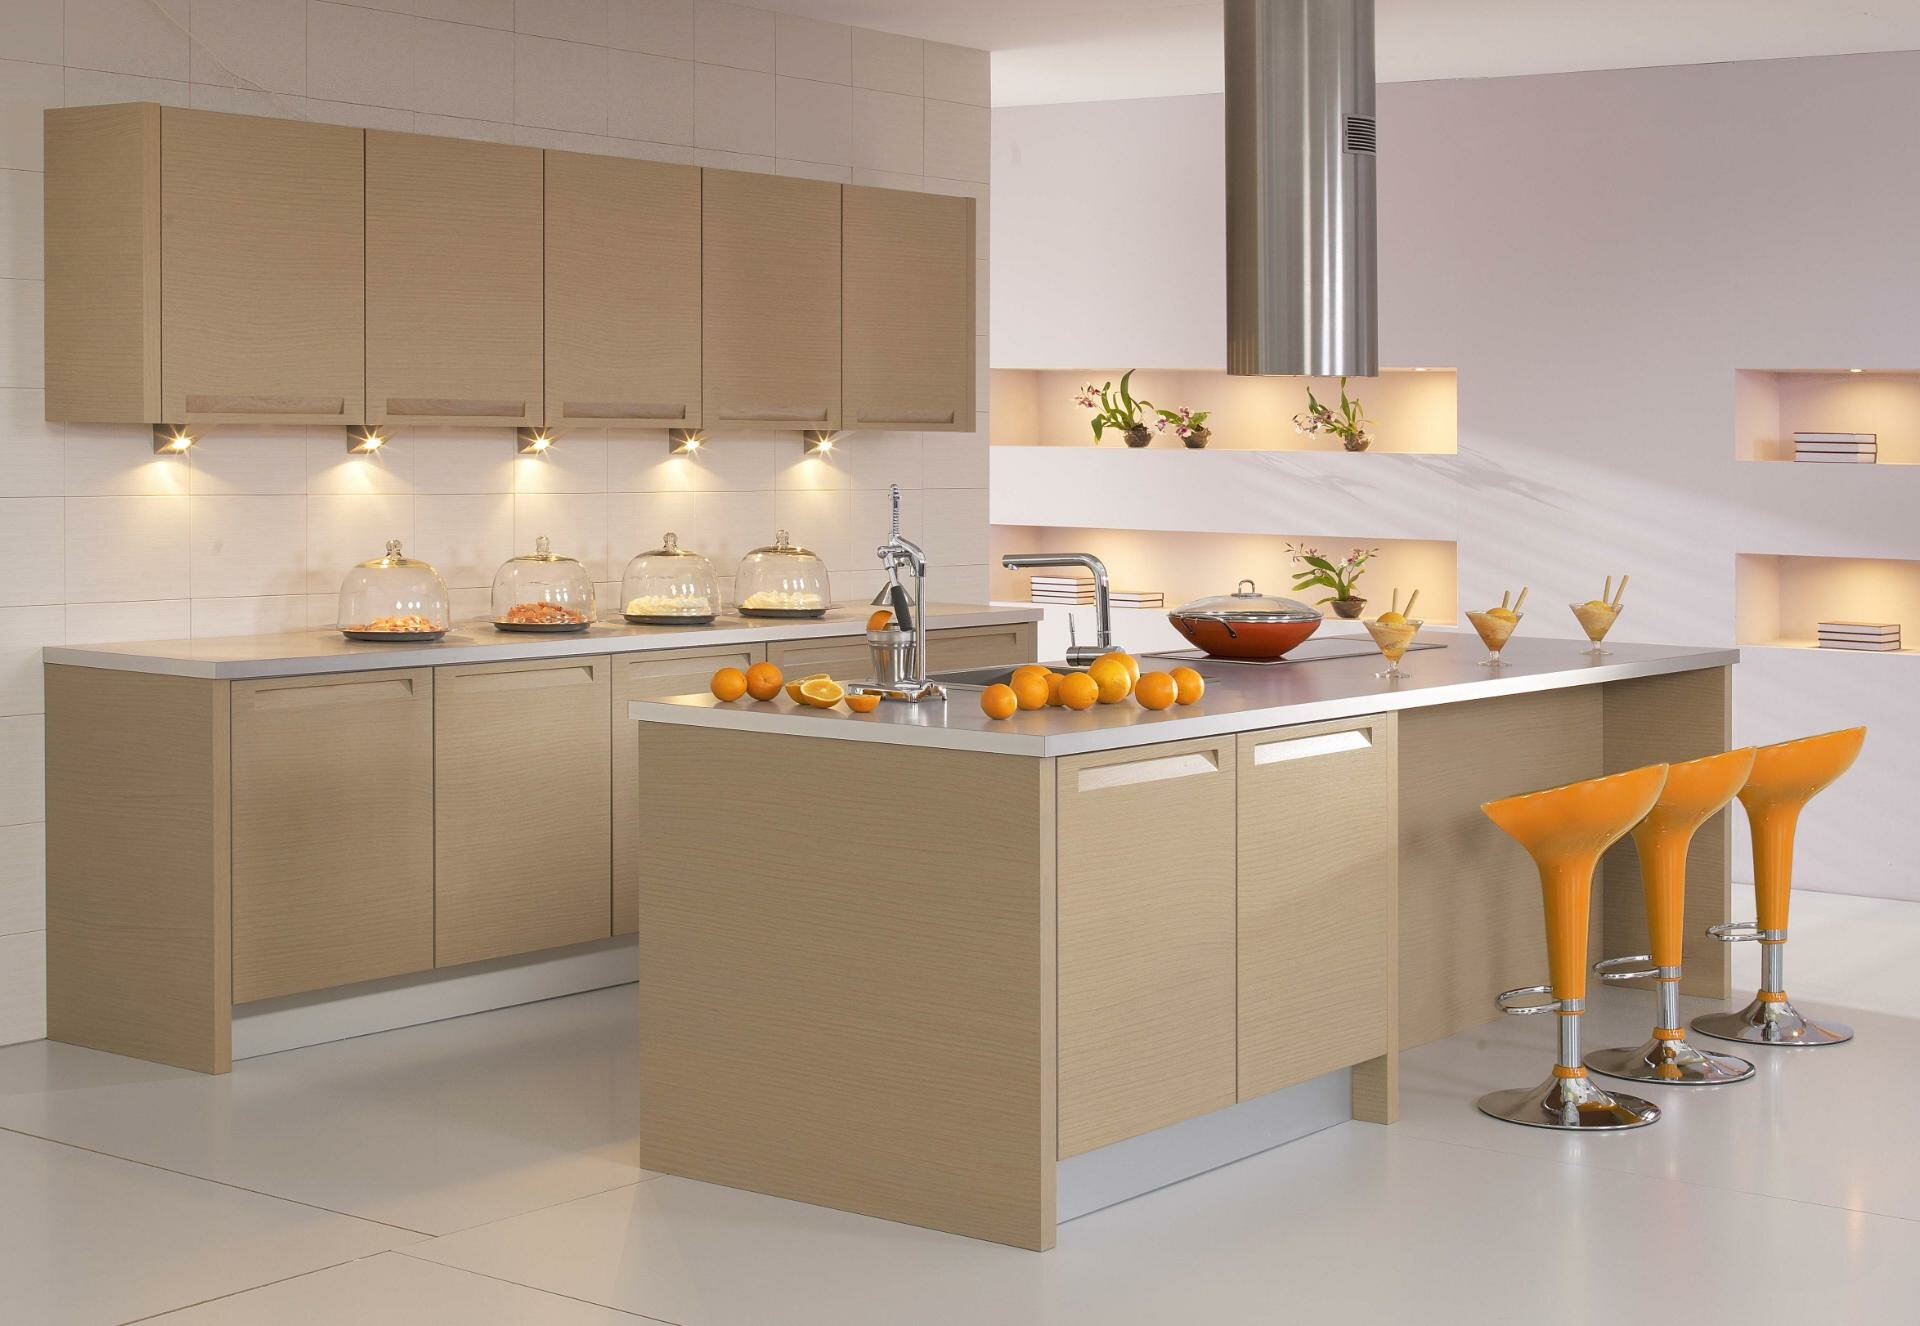 15 great kitchen cabinets that will inspire you Kitchen setting pictures